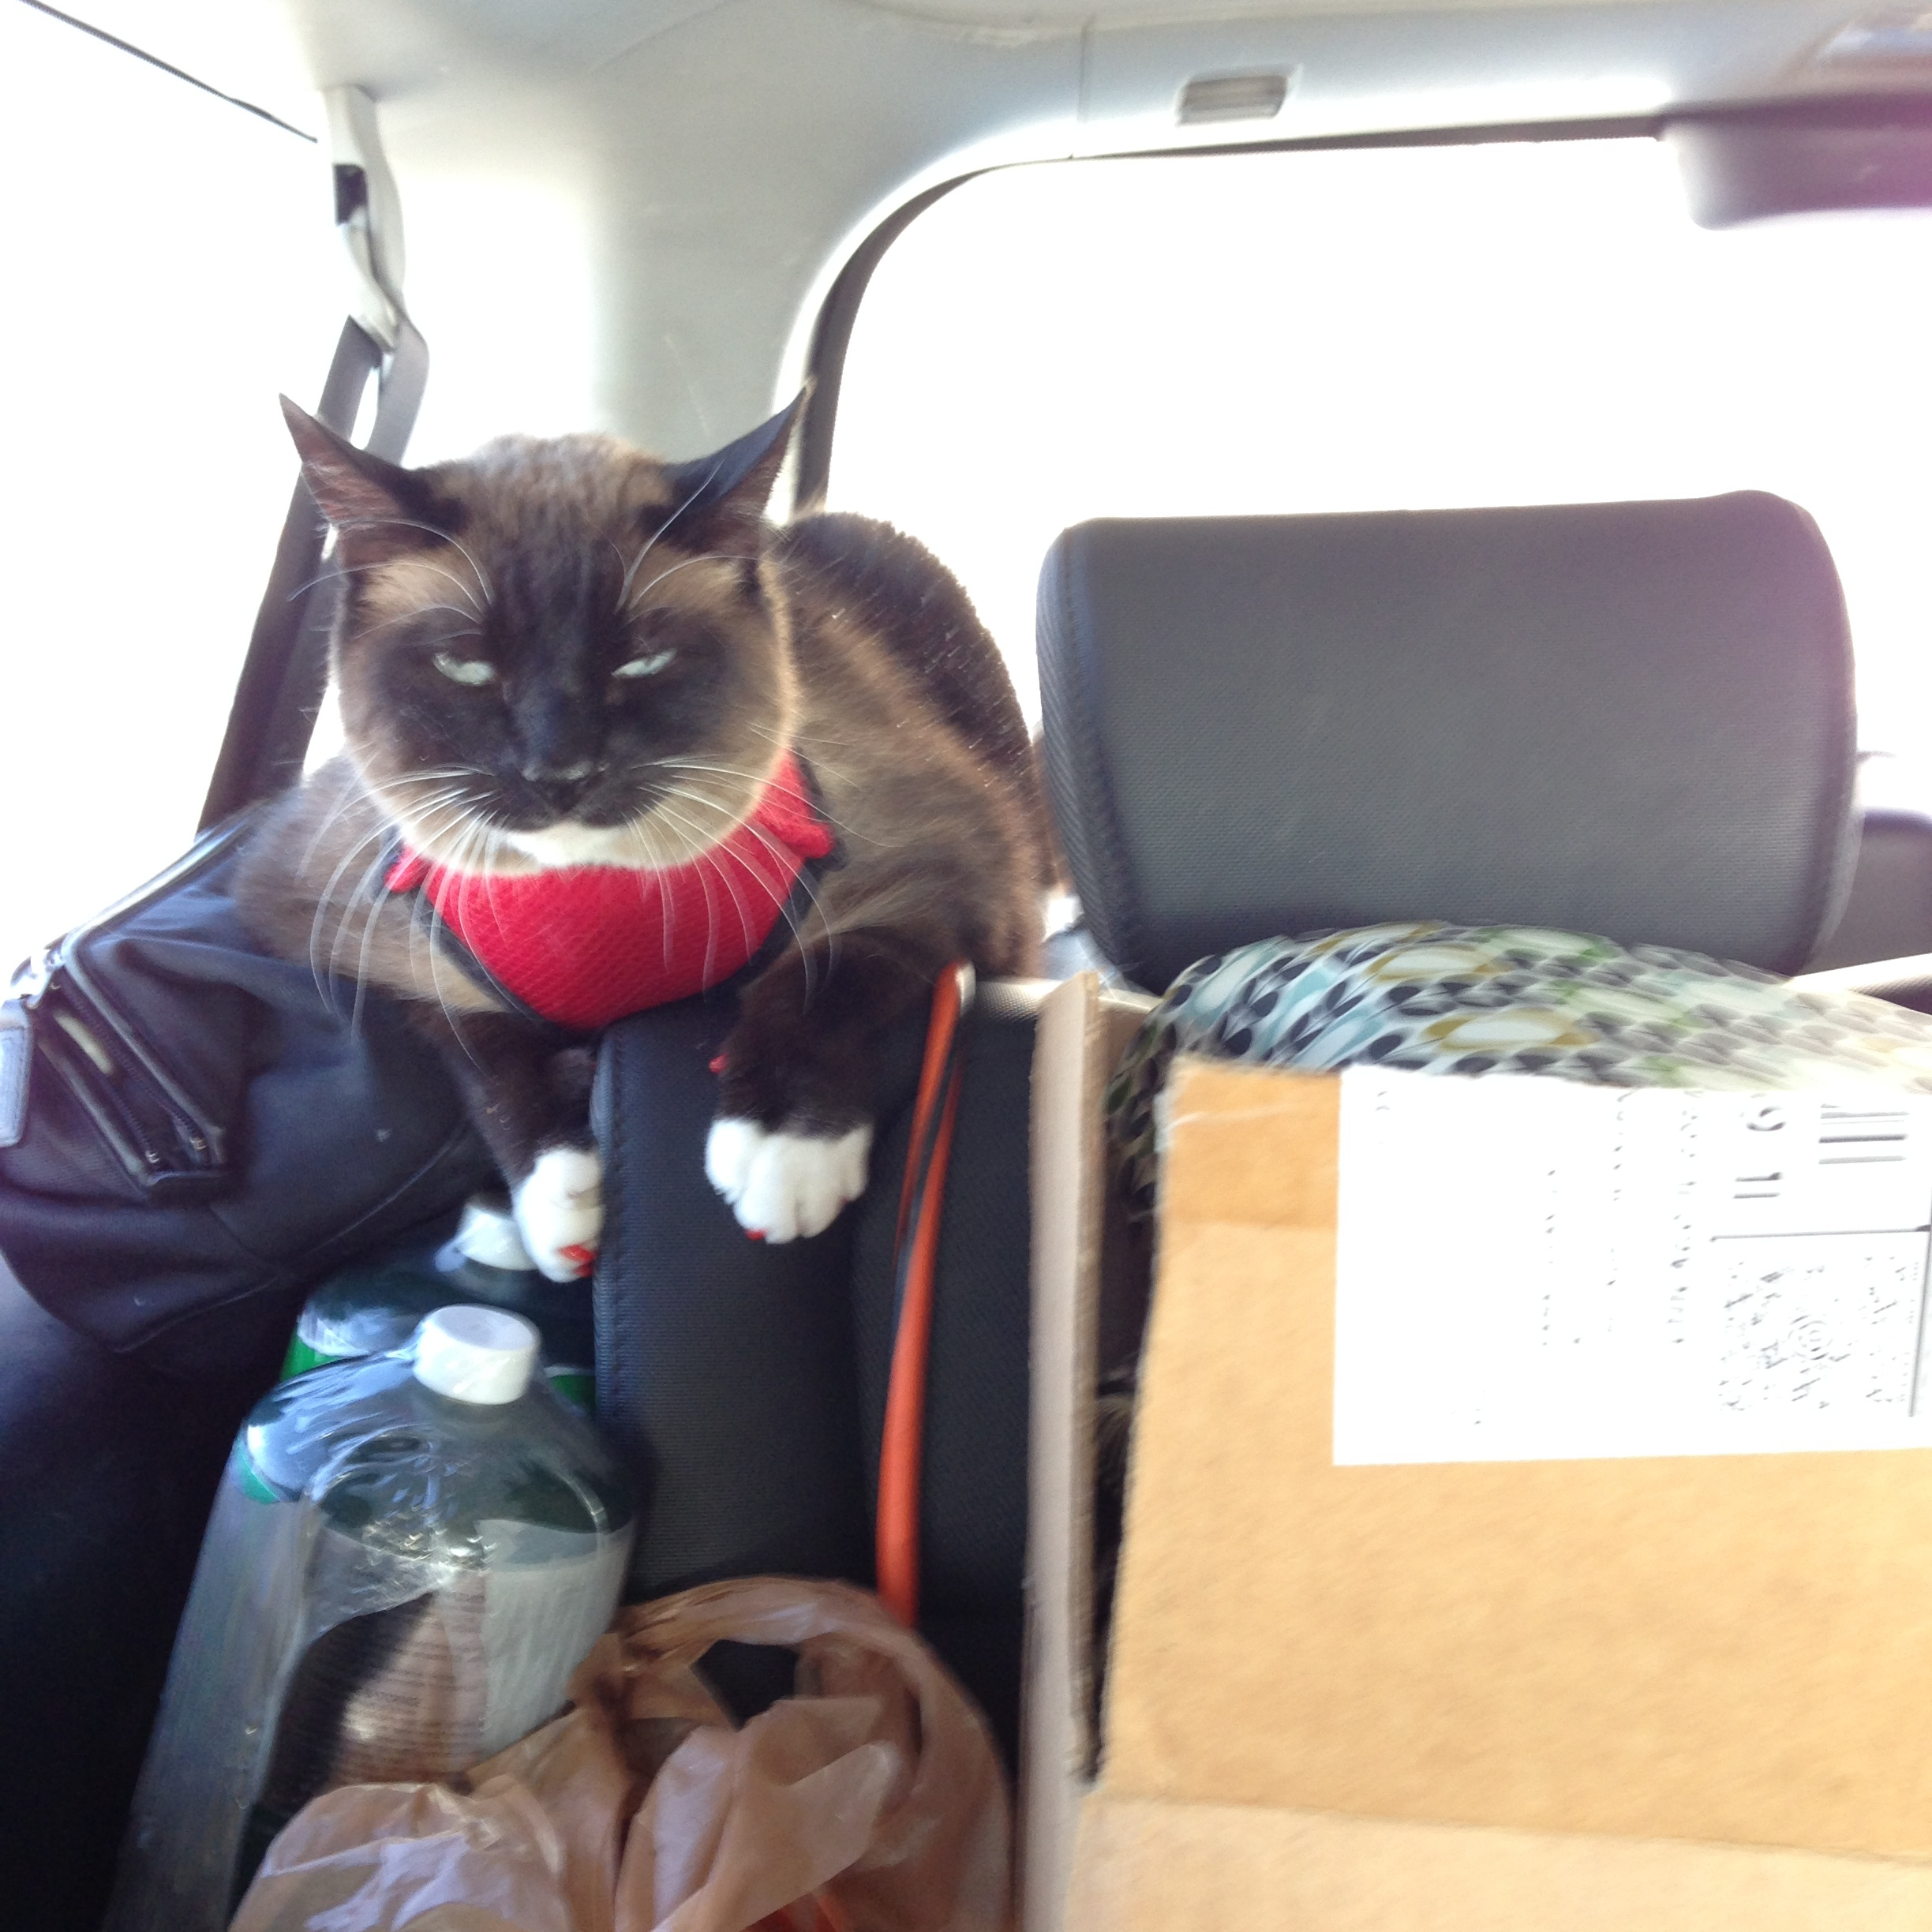 The cats don't seem to mind the wind chill at all.  They are comfy and cozy in the car.  Once we get to warmer climates we'll be able to put liquids back in the trailer and they'll have the run of the entire back of our Honda Element.